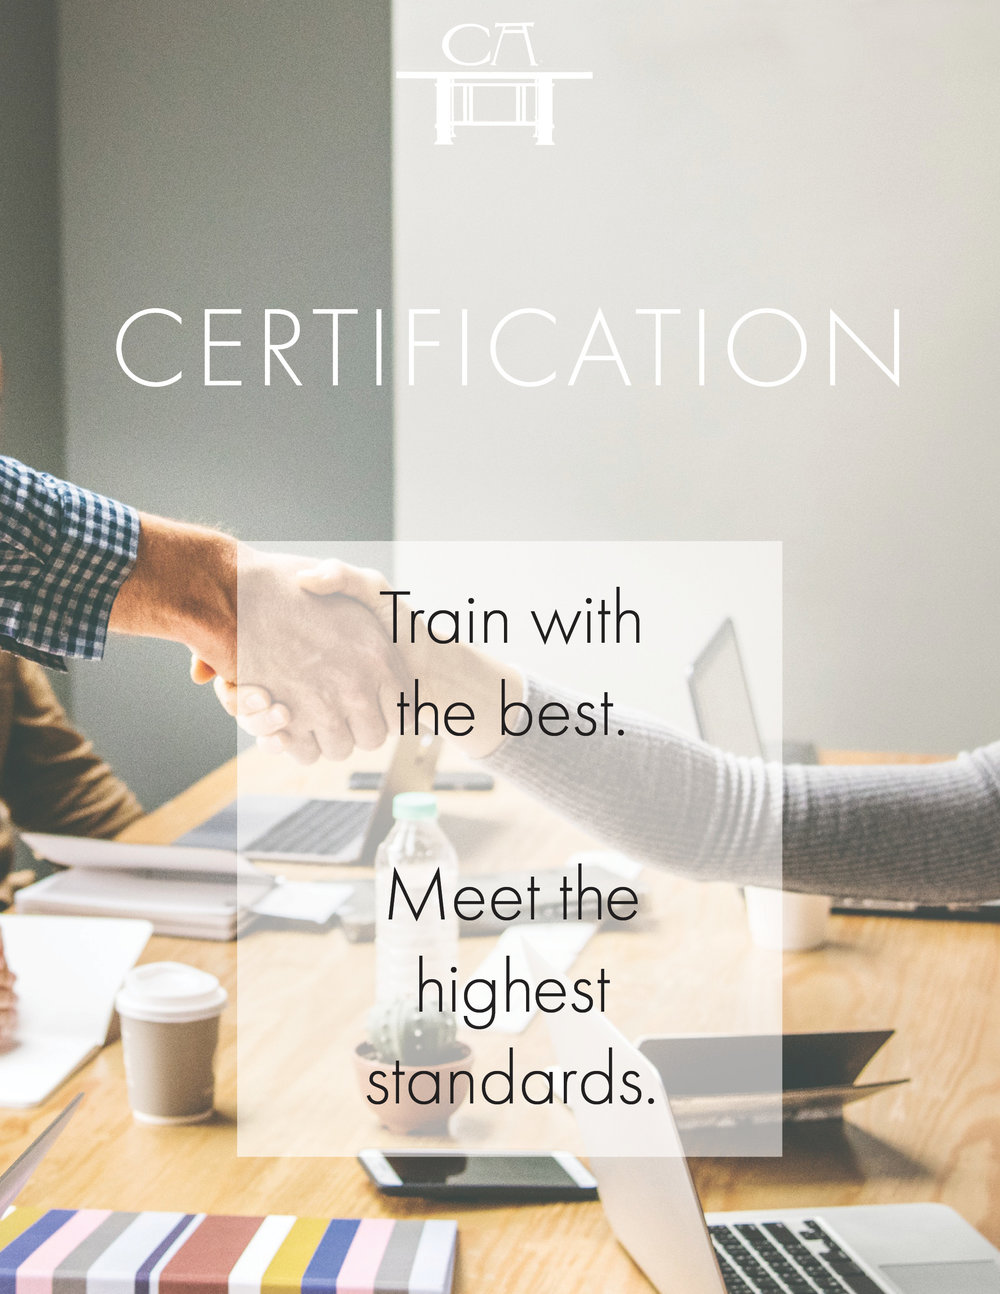 Certification - Your credentials expand with Cana Academy's Certification. Complete 4 of our Master Teacher Institute courses to qualify for certification.